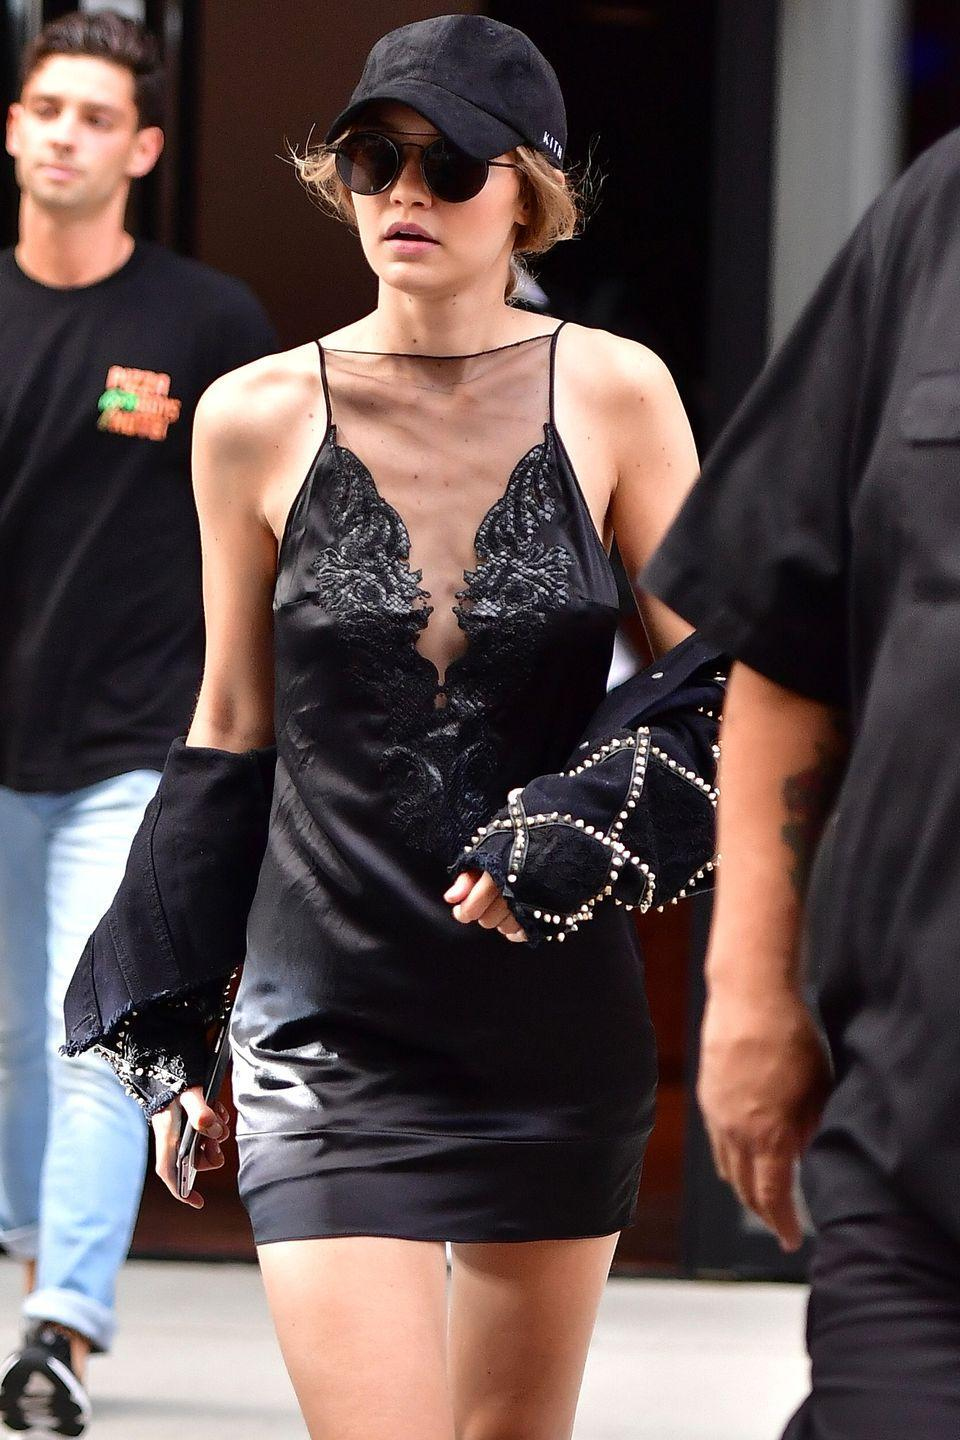 <p>Hadid wears a paneled silk slip dress, embellished jacket slung at her arms, black baseball cap and aviator sunglasses while out with Kendall Jenner in New York. </p>